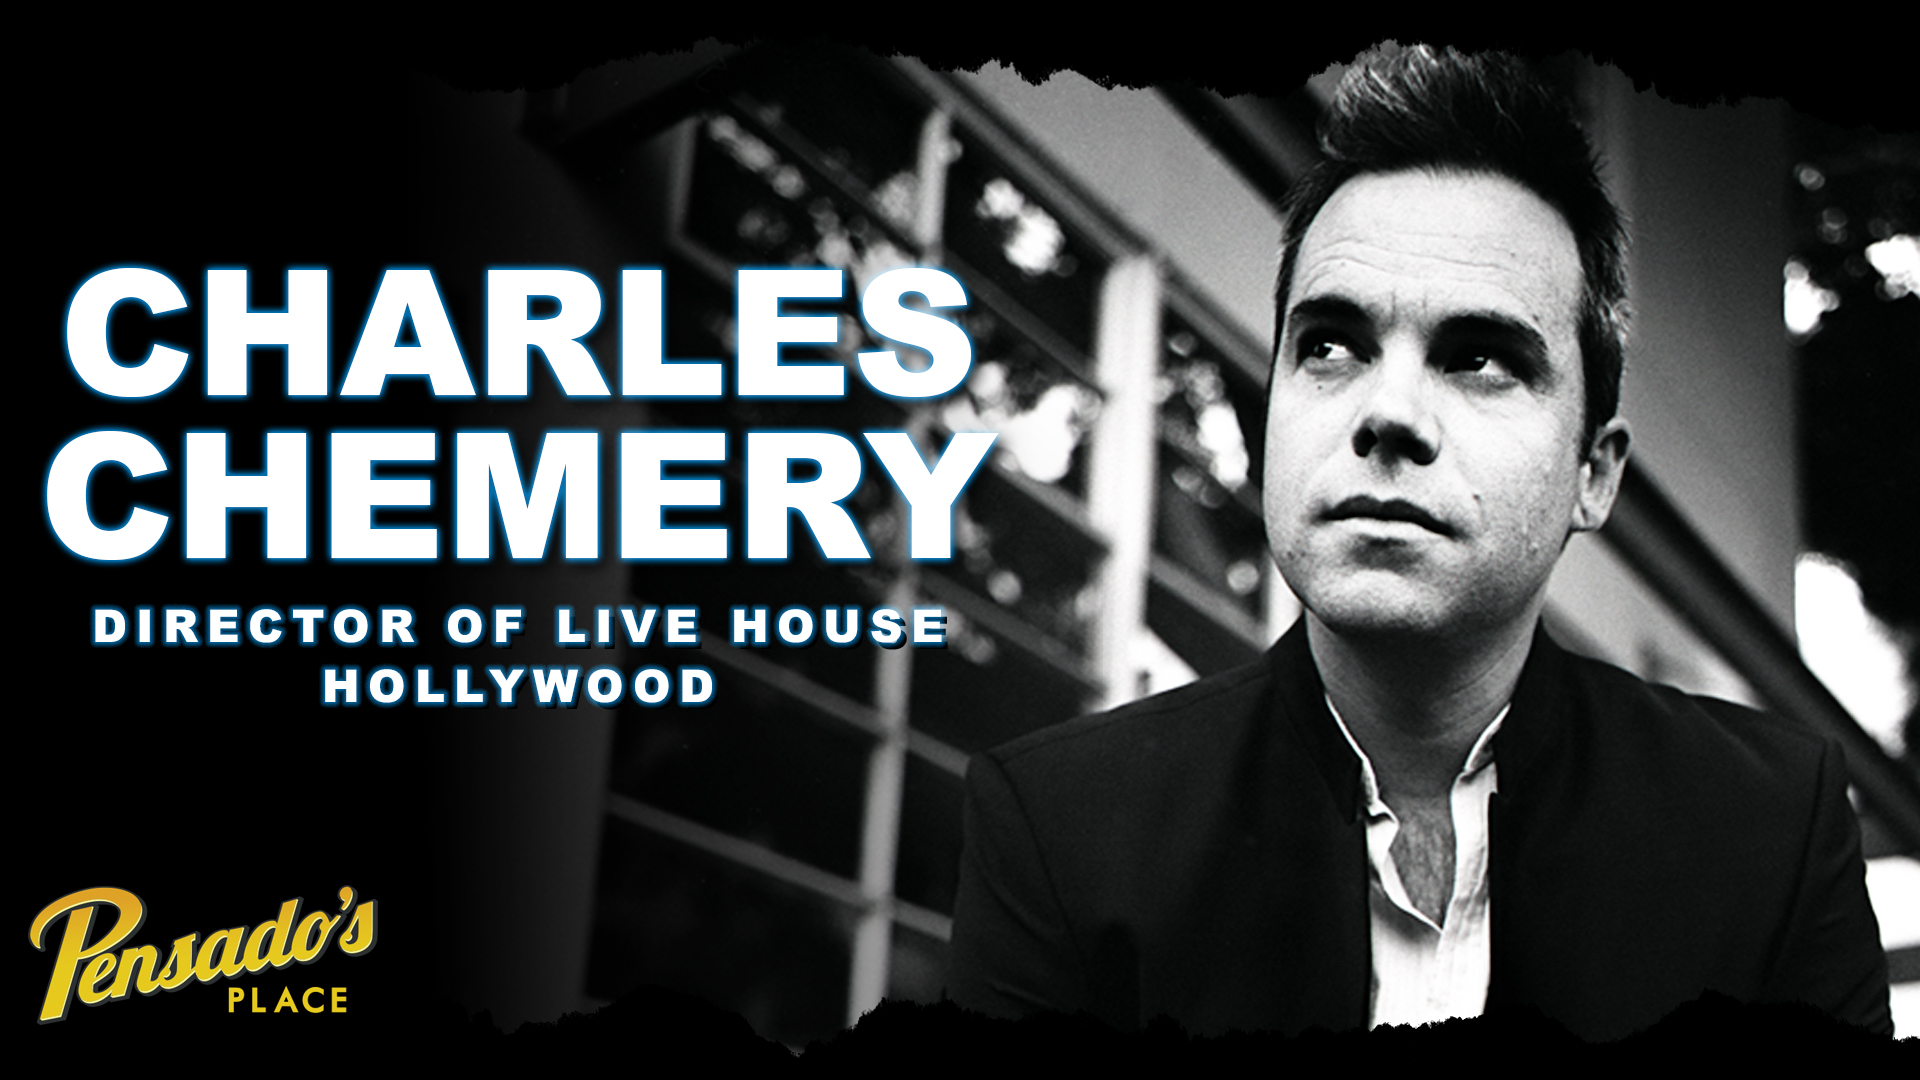 Director of Live House Hollywood, Charles Chemery